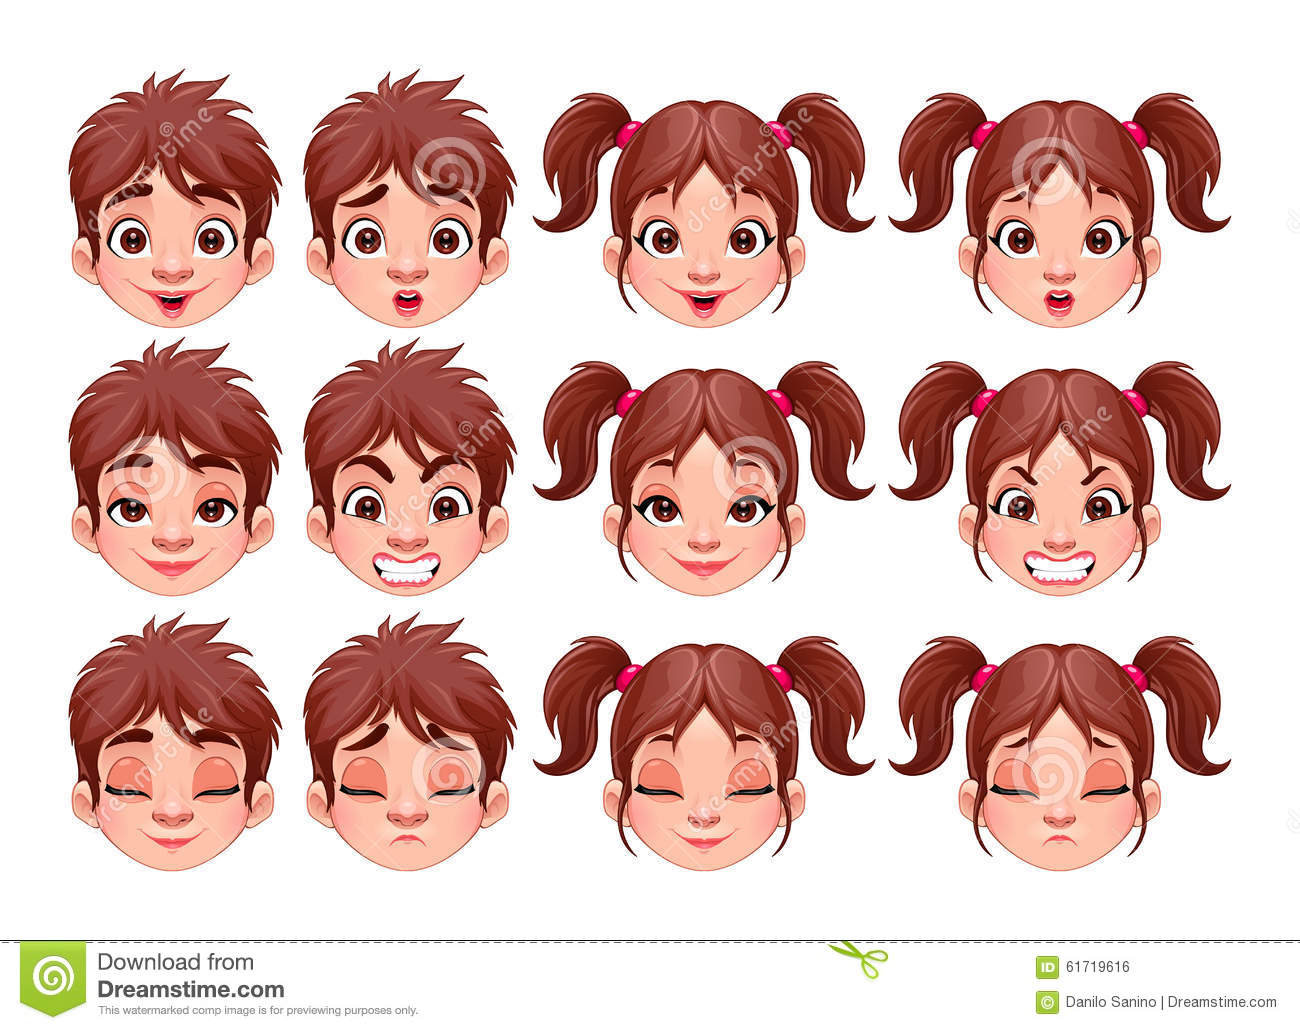 Stock Illustration Different Expressions Boy Girl Vector Isolated Characters Image61719616 additionally Eye Study Reference 345383858 additionally Stock Illustration Cartoon Smiling Mouth further Set Cute Little Baby Girl Pink 572290468 in addition edy In The Classroom 50 Ways To Bring Laughter Into Any Lesson. on cartoon mouth expressions